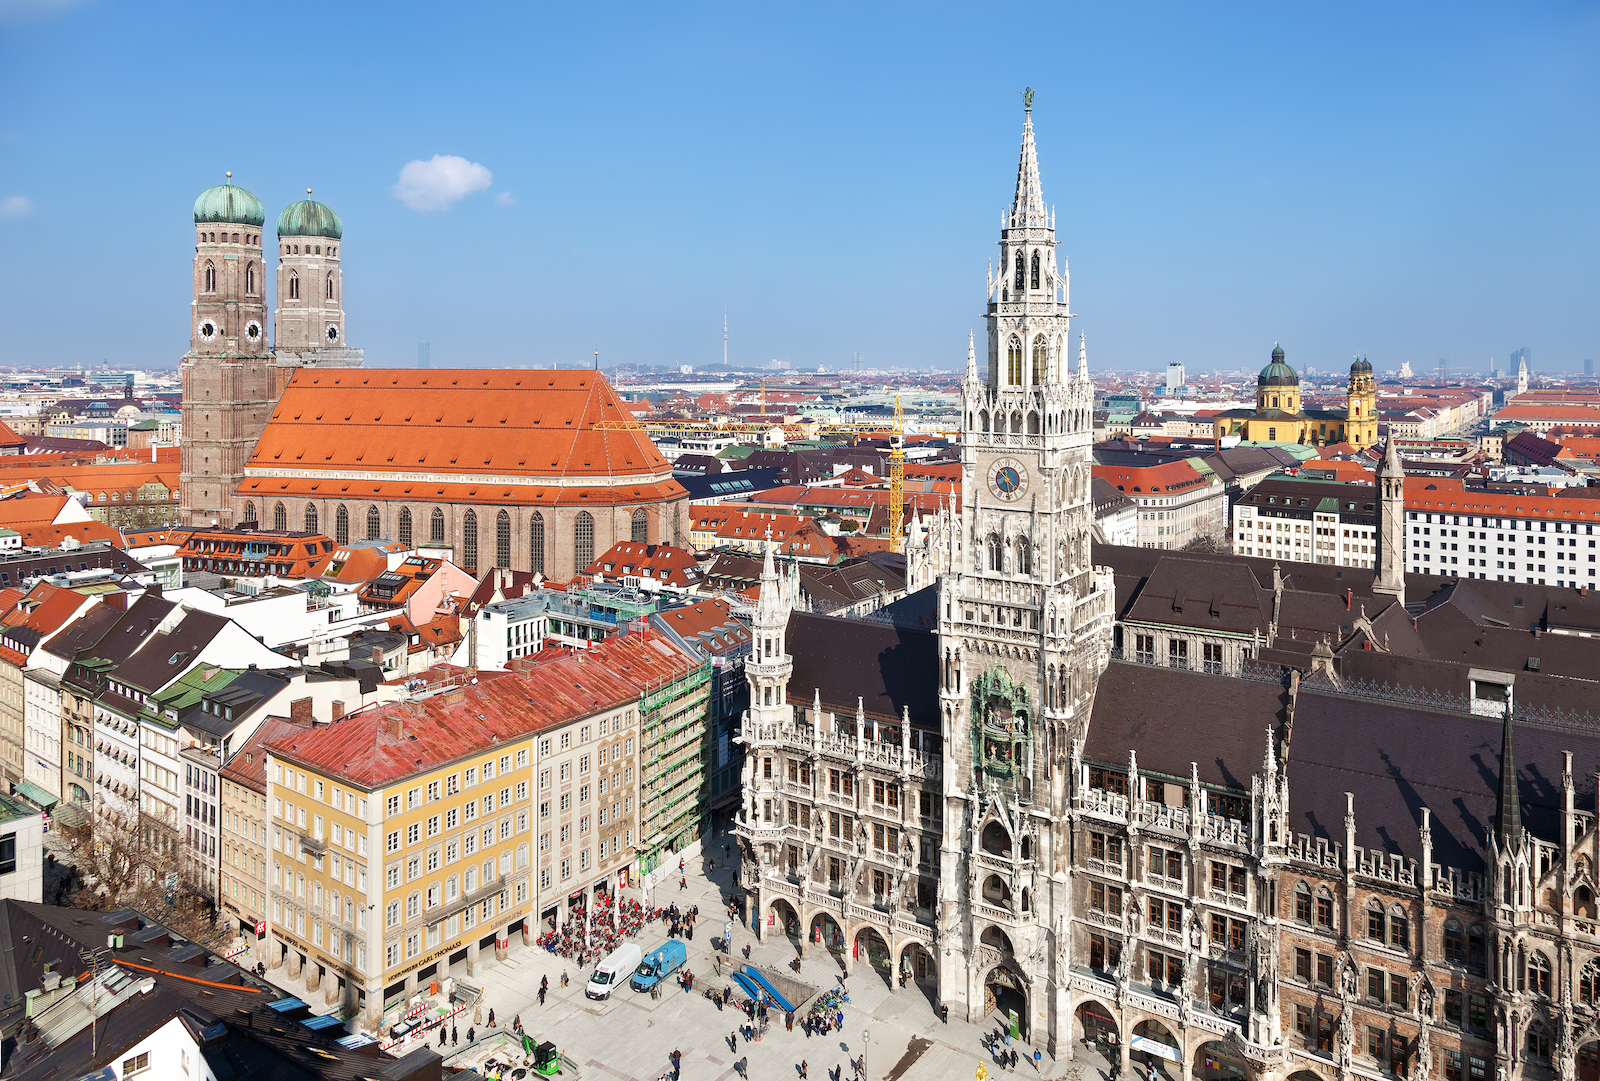 Old Town of Munich, Germany